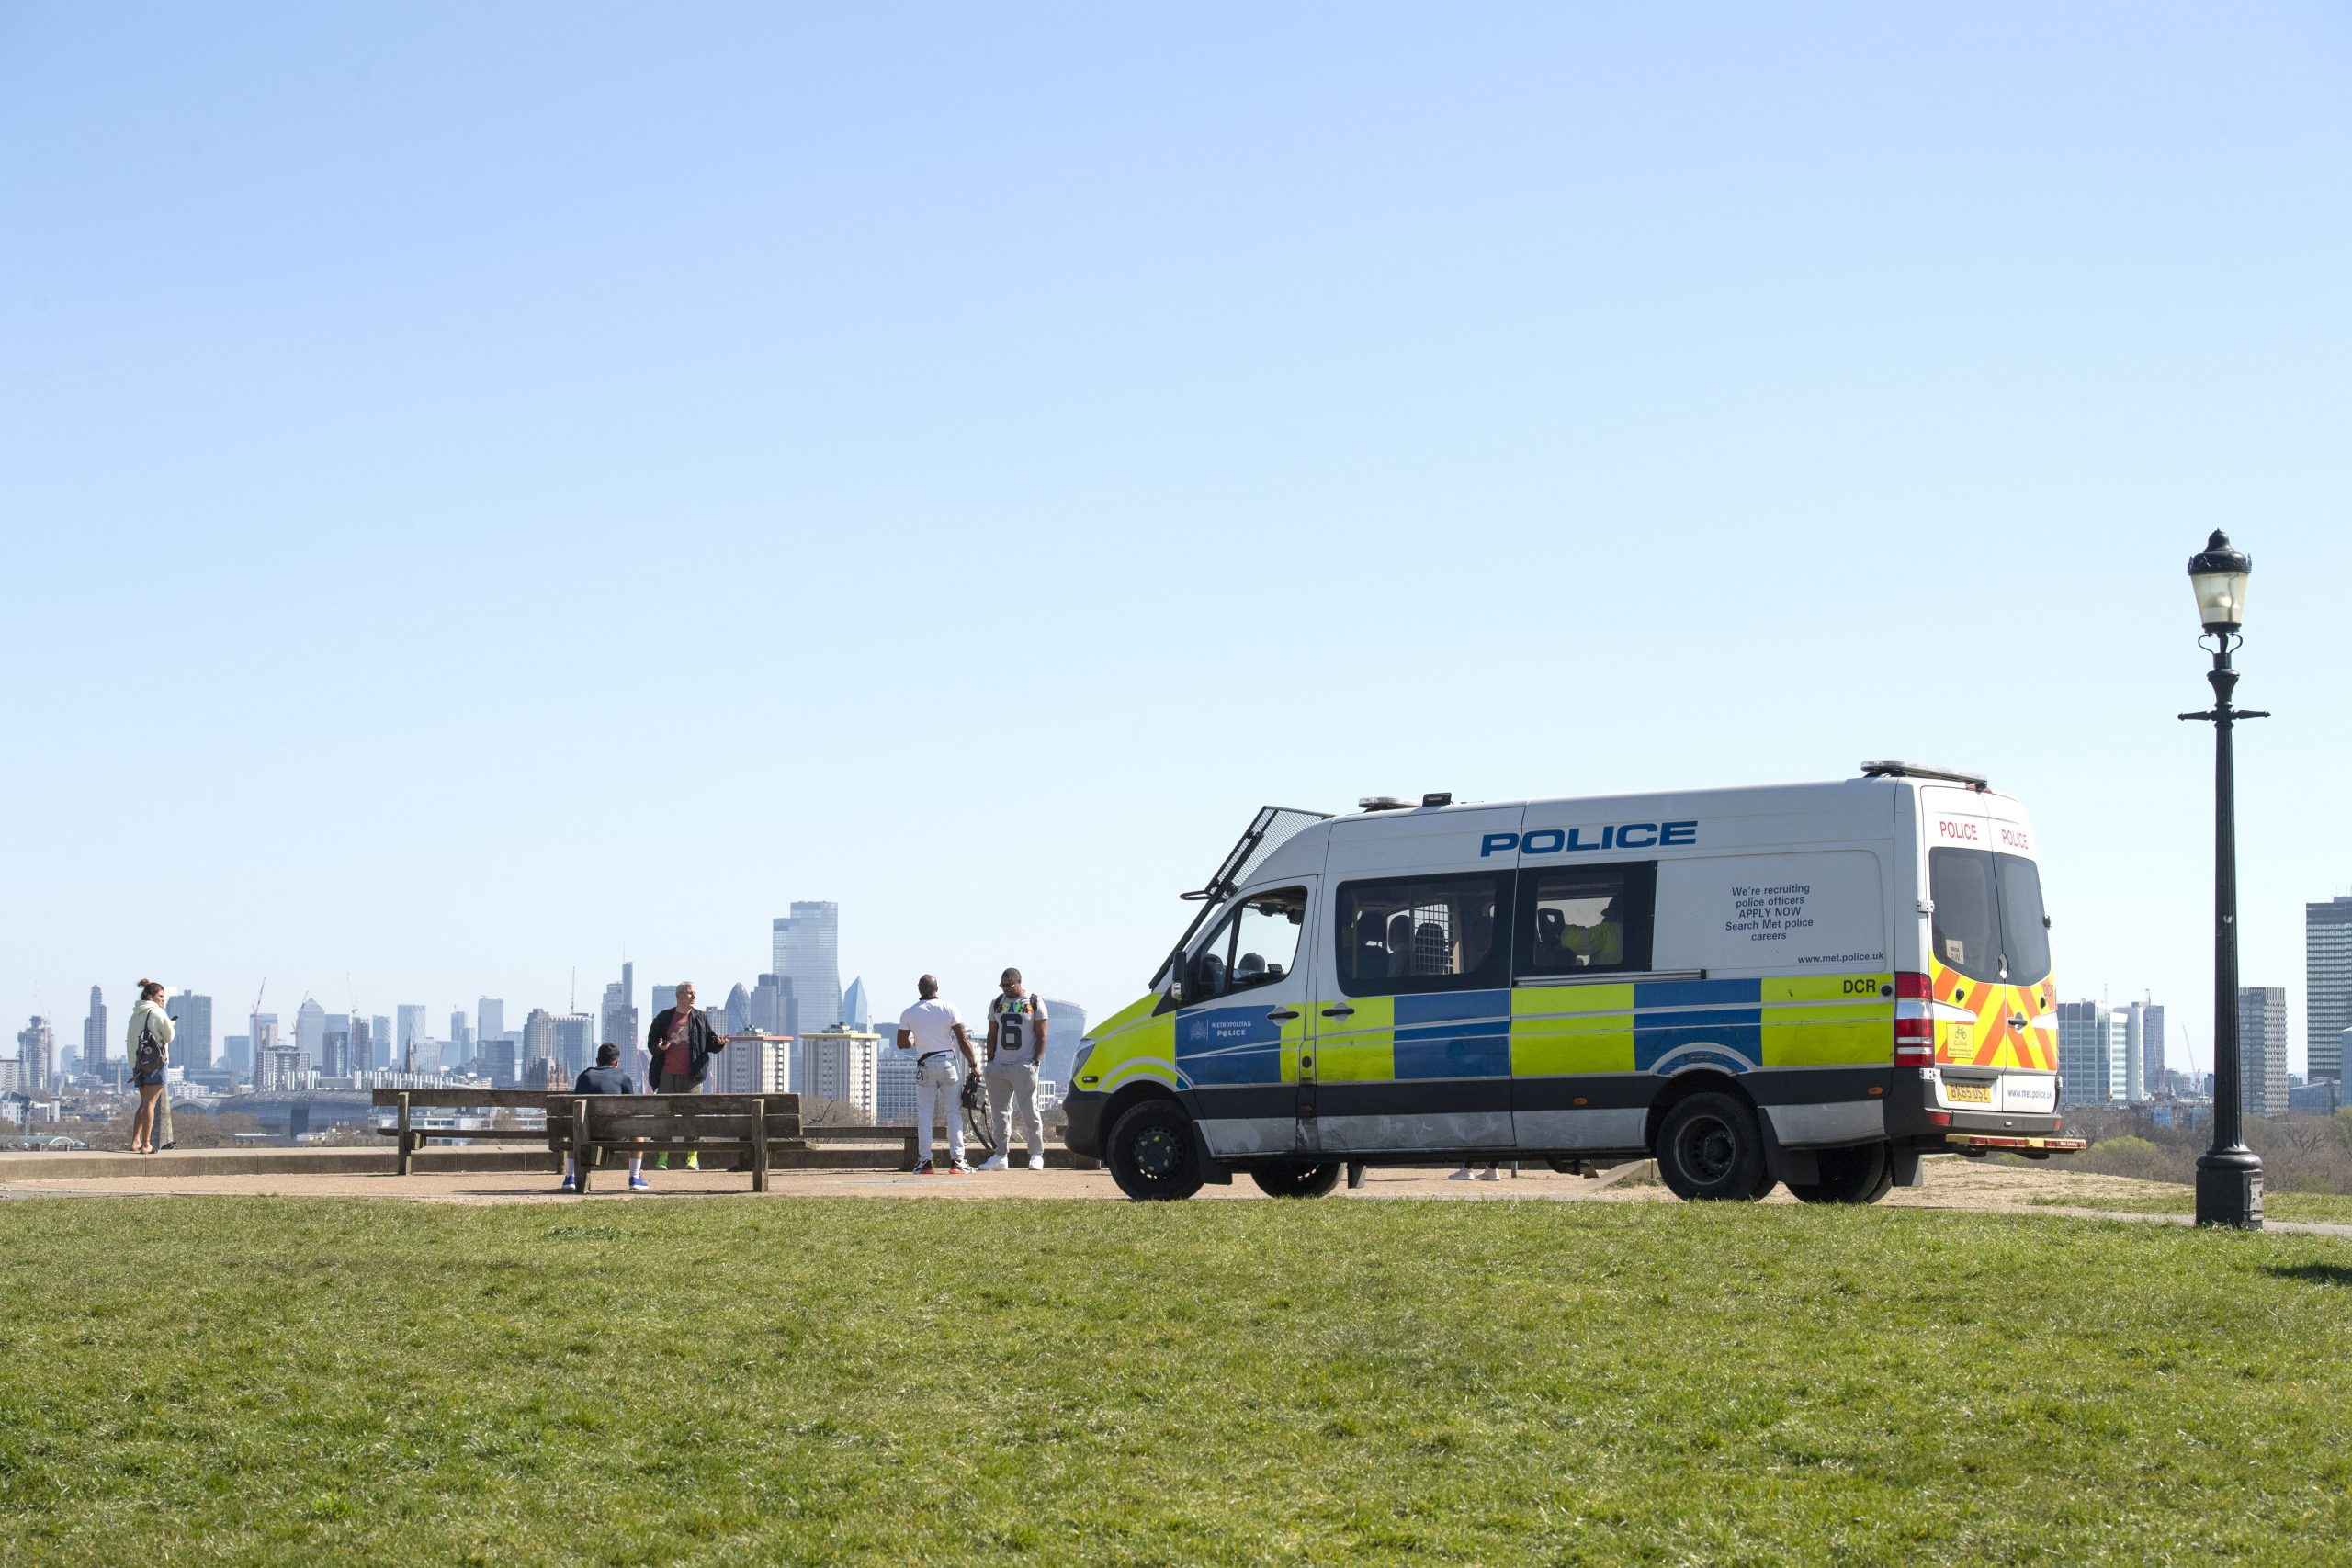 London in lockdown. Coronavirus: Researchers fear UK will become worst hit country in Europe with 66,000 deaths by July